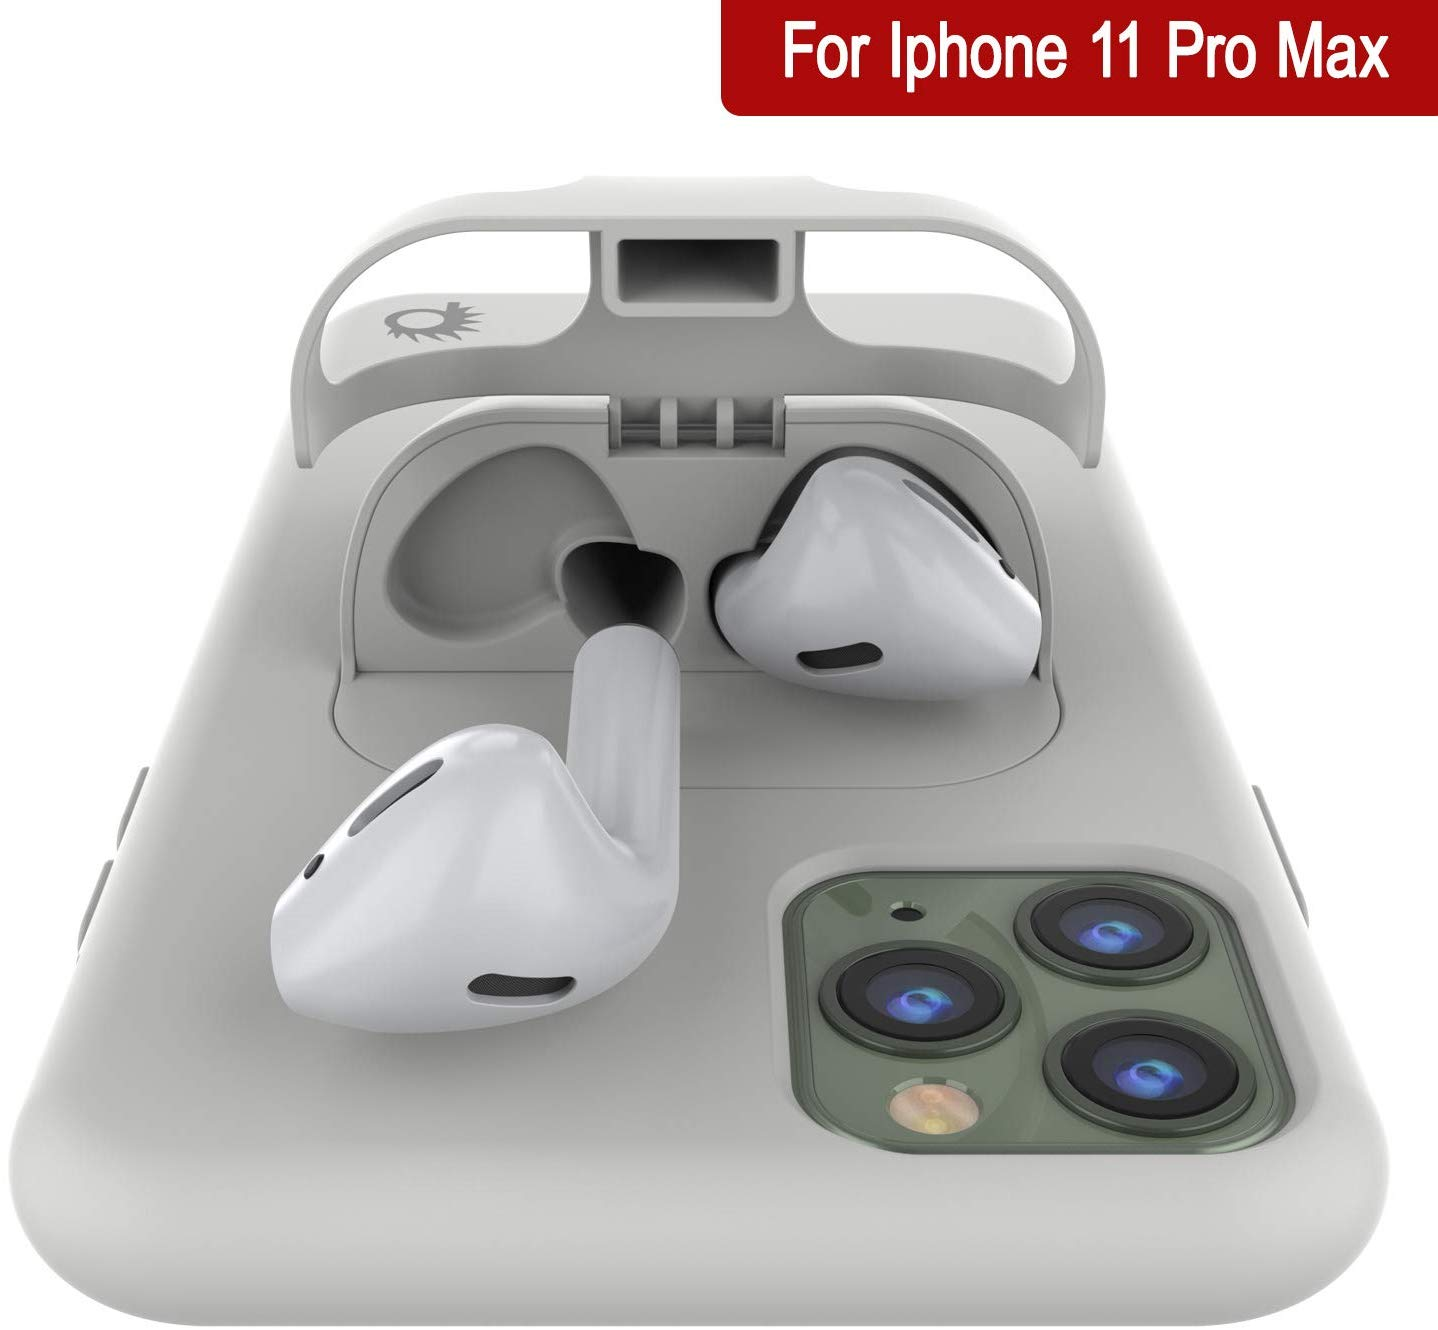 "Punkcase iPhone 11 Pro Max Airpods Case Holder (CenterPods Series) | Slim & Durable 2 in 1 Cover Designed for iPhone 11 Pro Max (6.1"") 